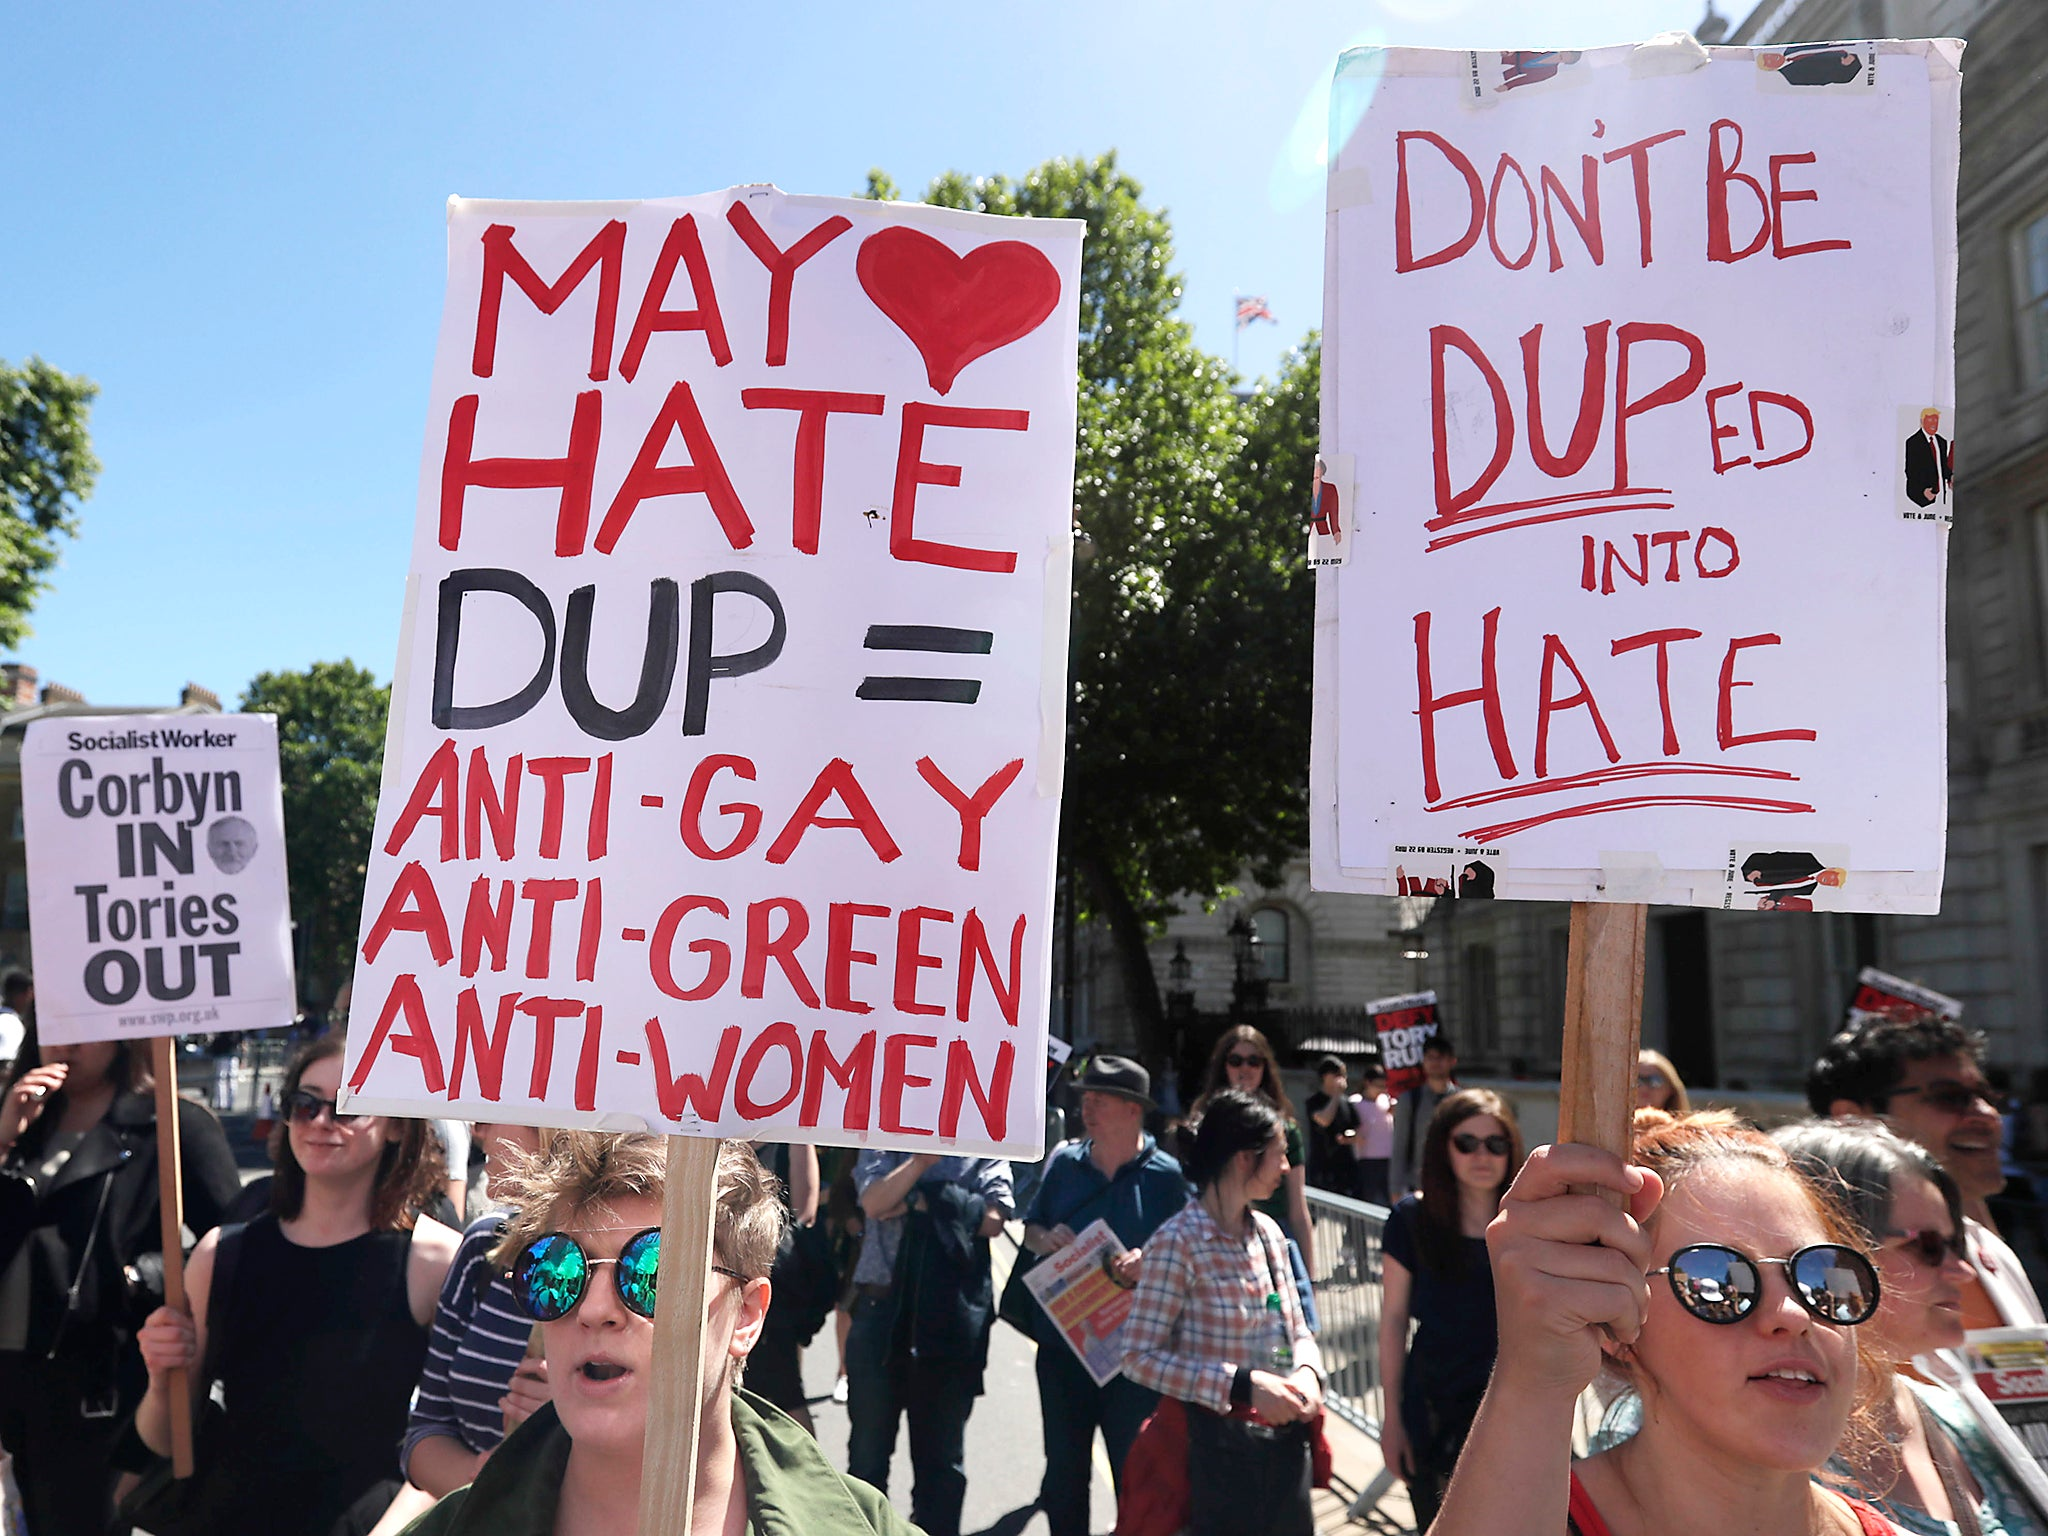 Hundreds descend on Parliament to protest Theresa May's DUP deal